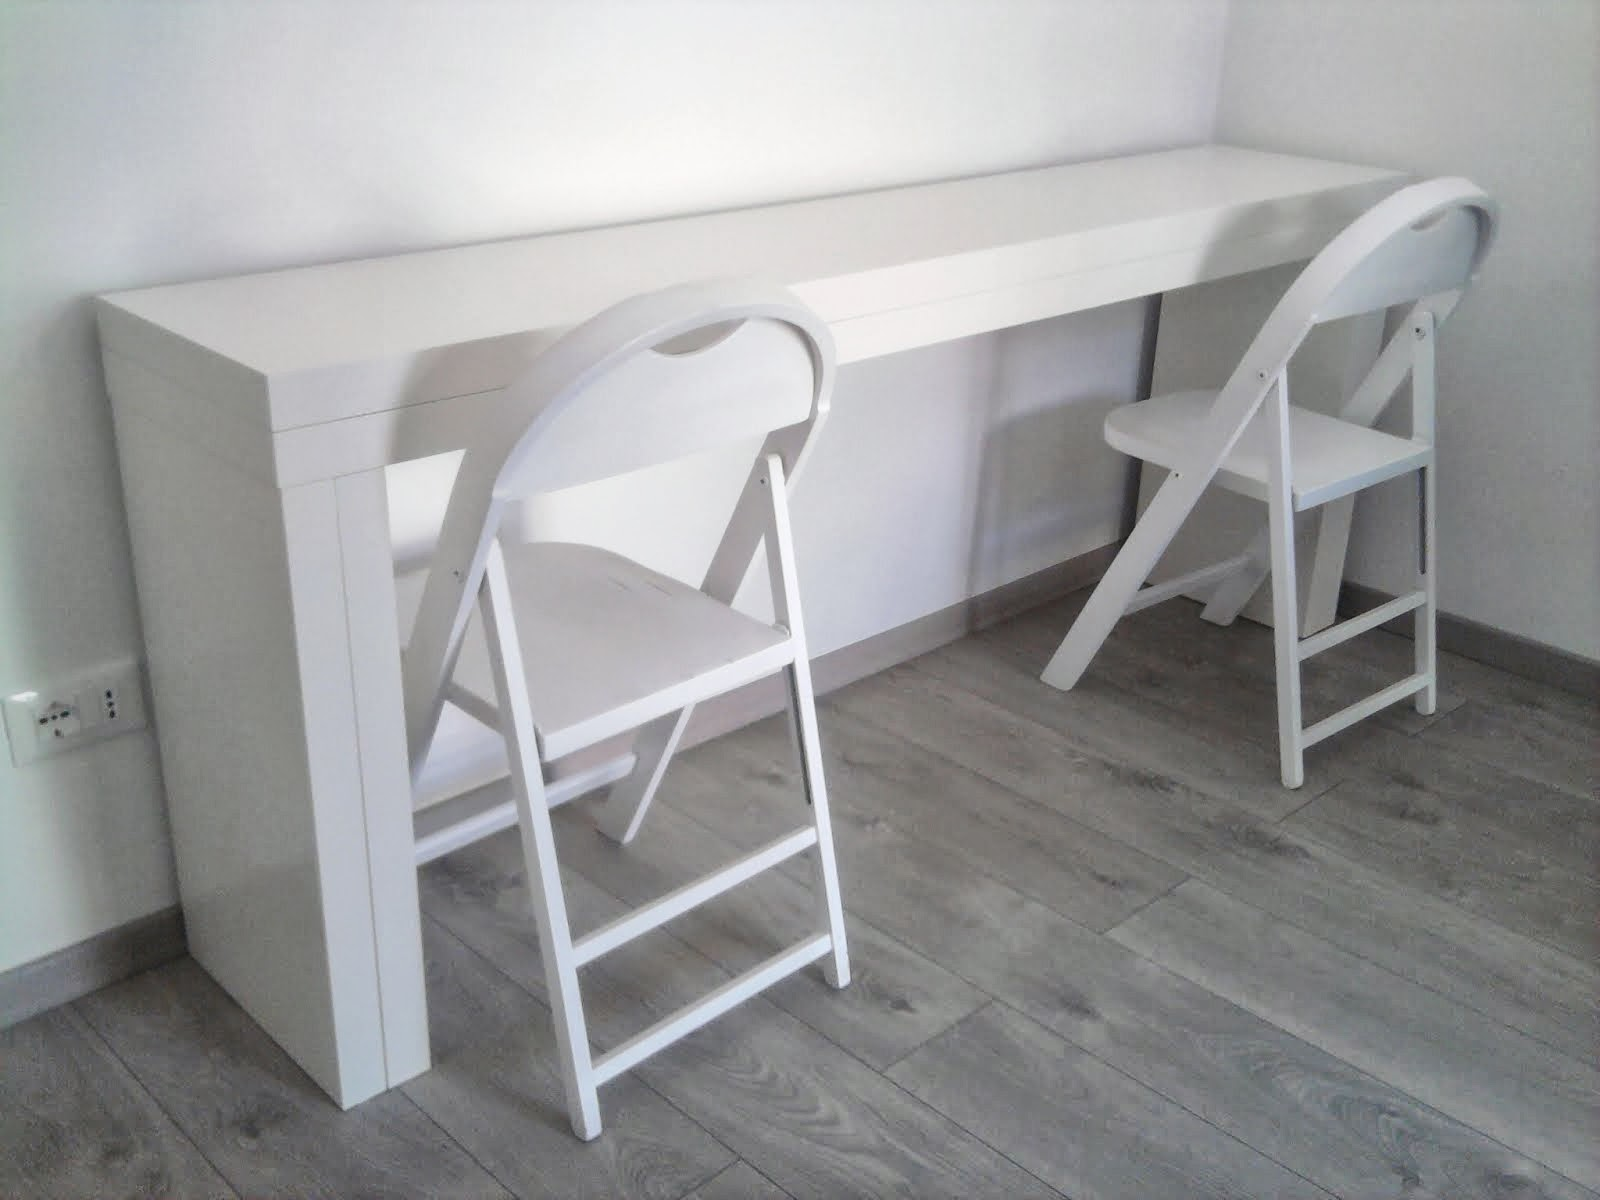 Double it malm console becomes a 10 people table ikea for Ikea hall table